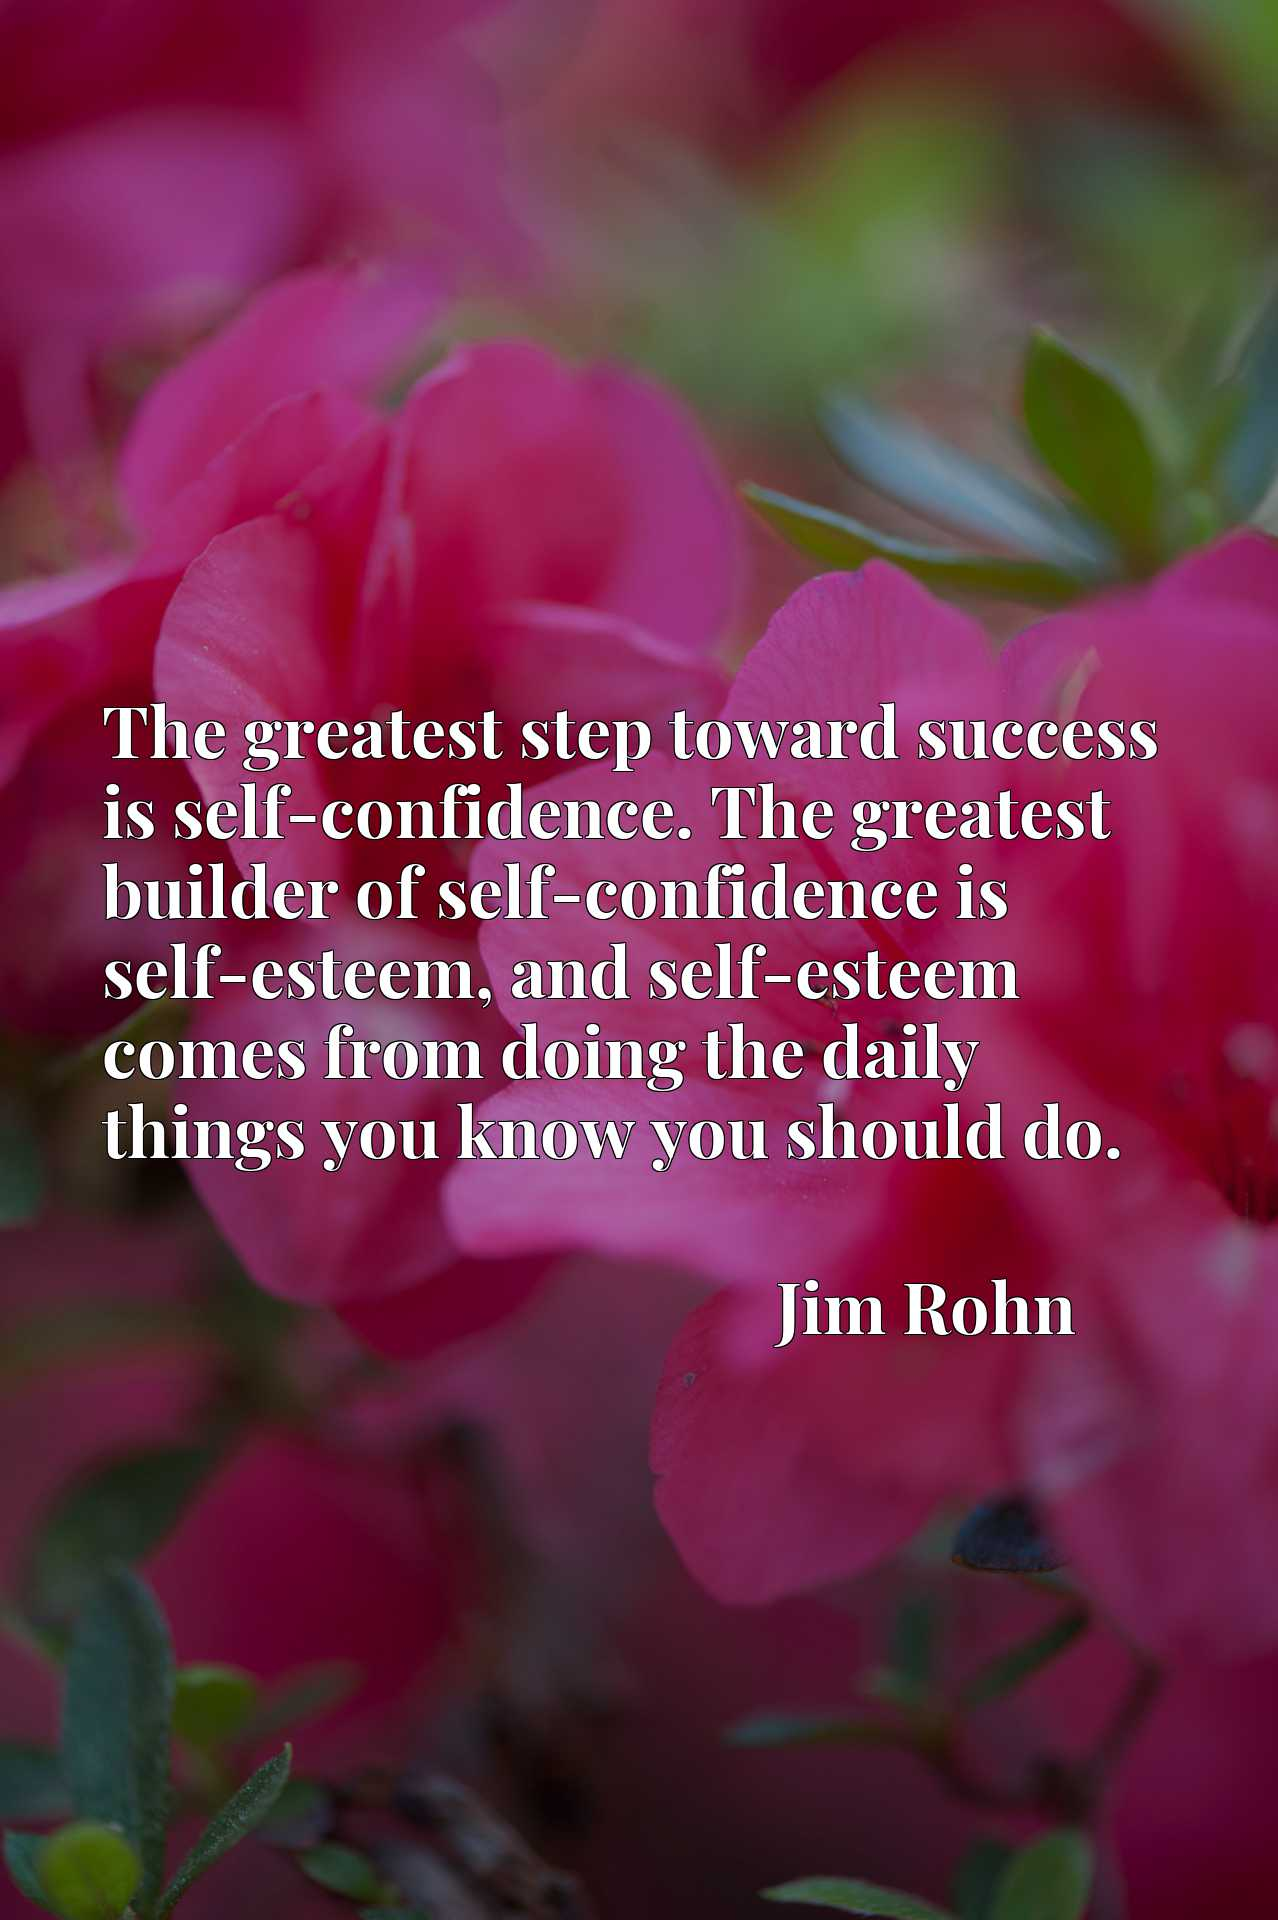 The greatest step toward success is self-confidence. The greatest builder of self-confidence is self-esteem, and self-esteem comes from doing the daily things you know you should do.